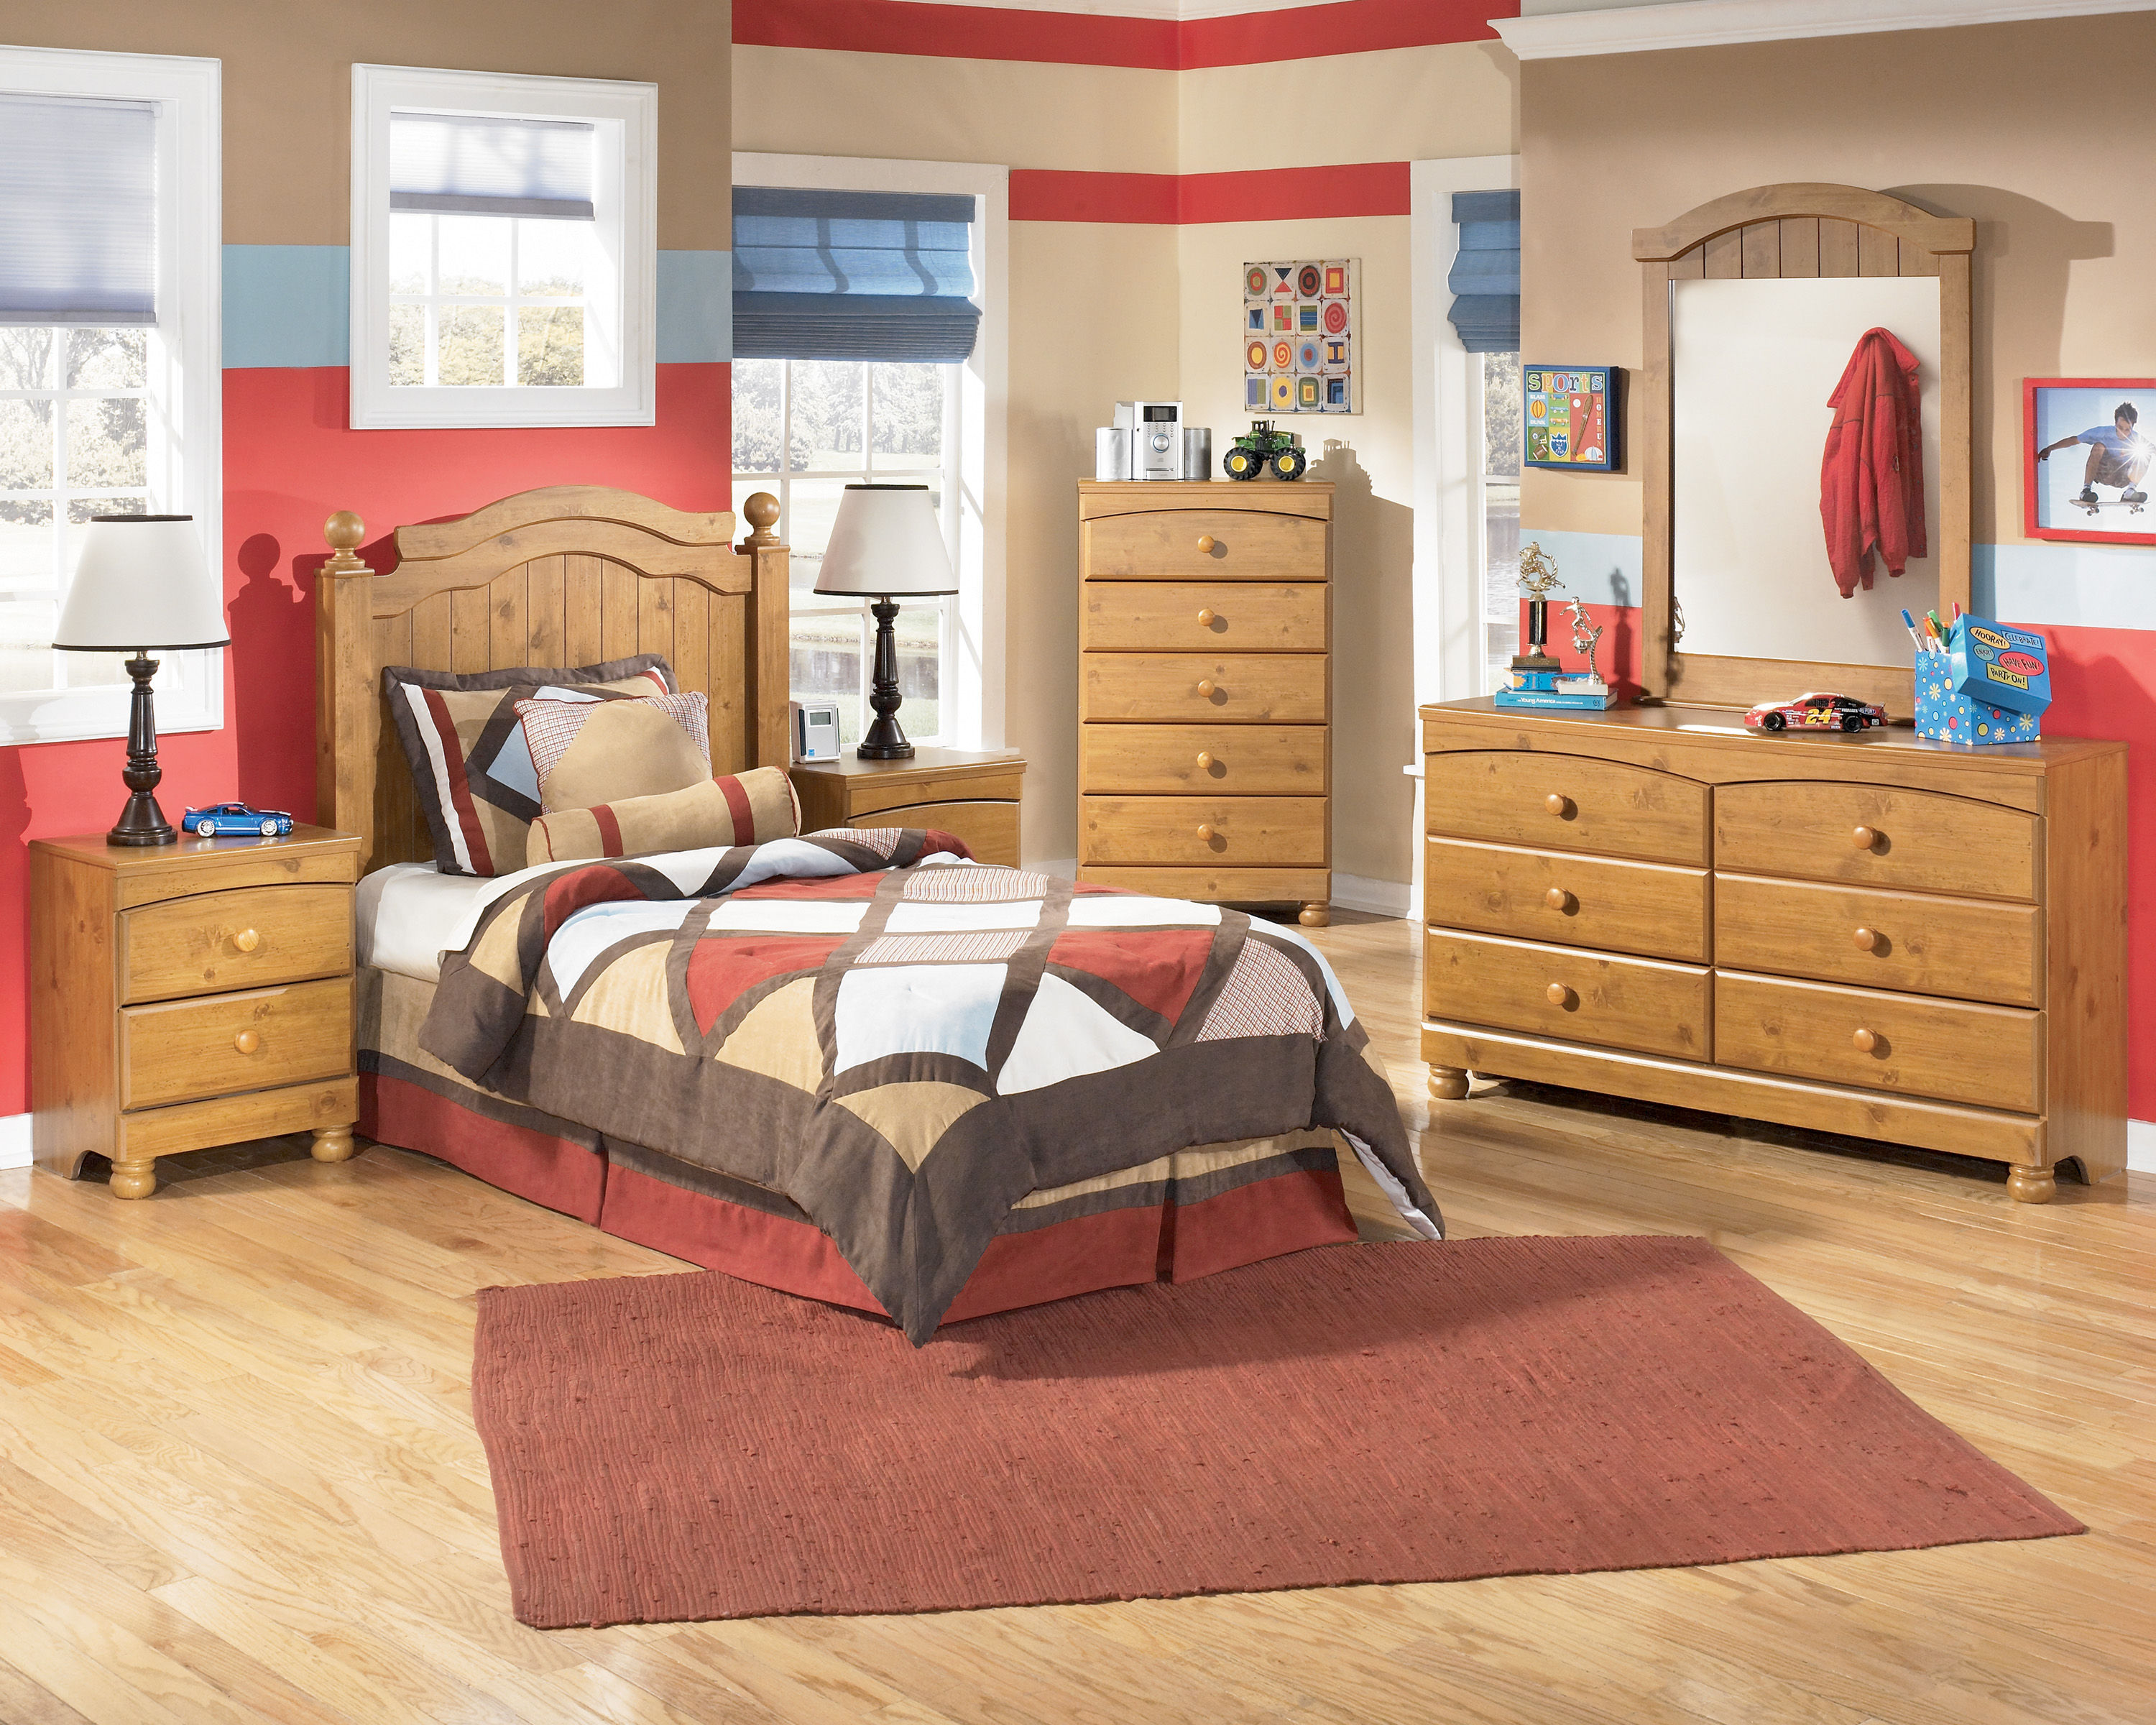 stages youth light brown wood bedroom sets the classy home 12093 | b233 21 26 46 52 92 sd